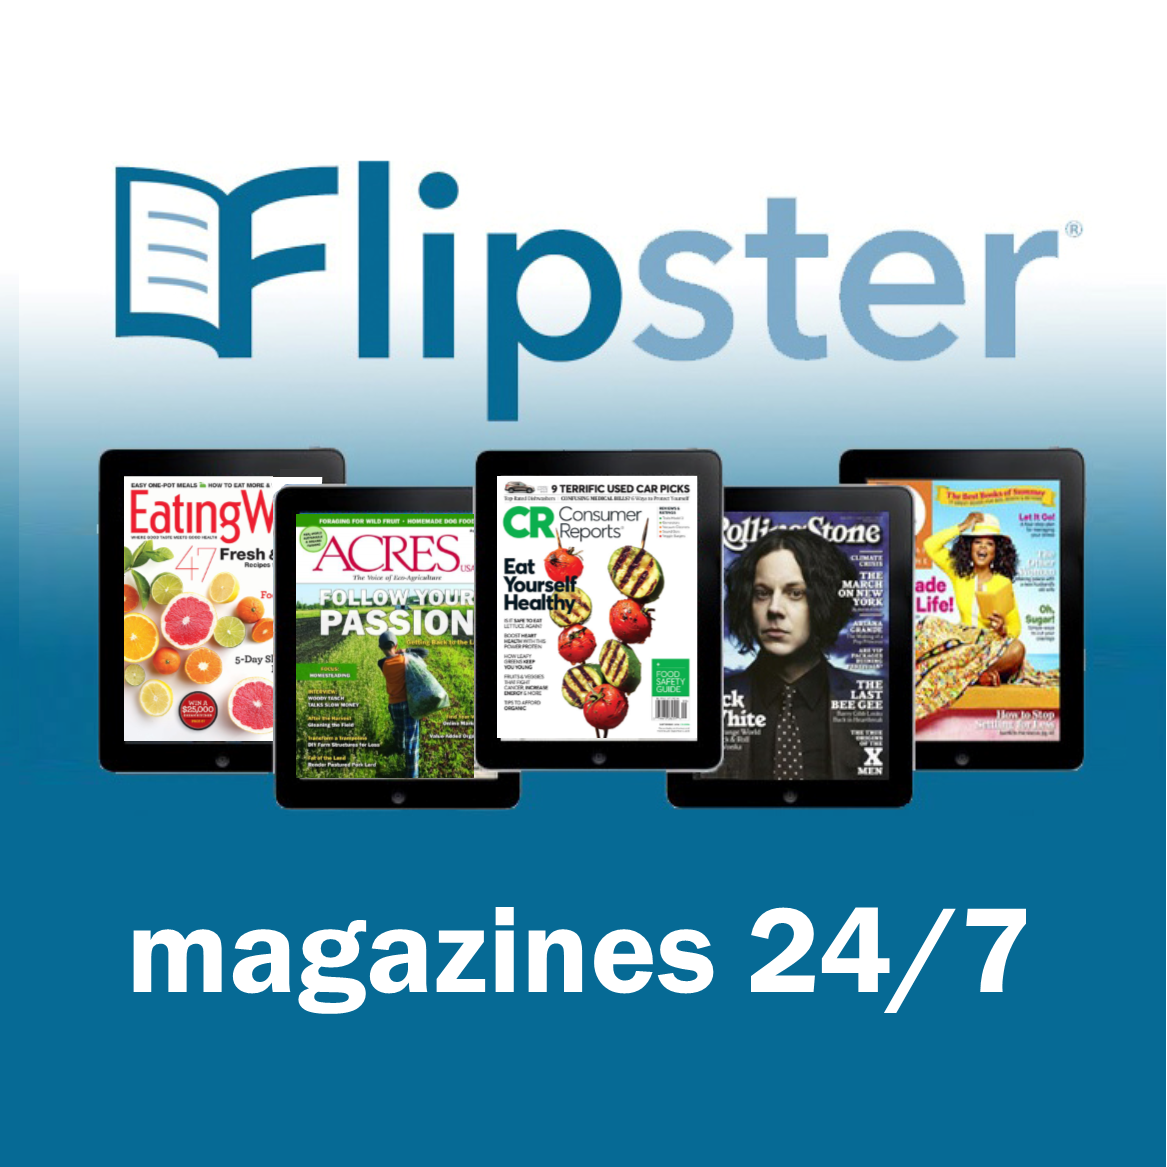 text Flipster magazines 24/7 and five tablets showing magazine covers